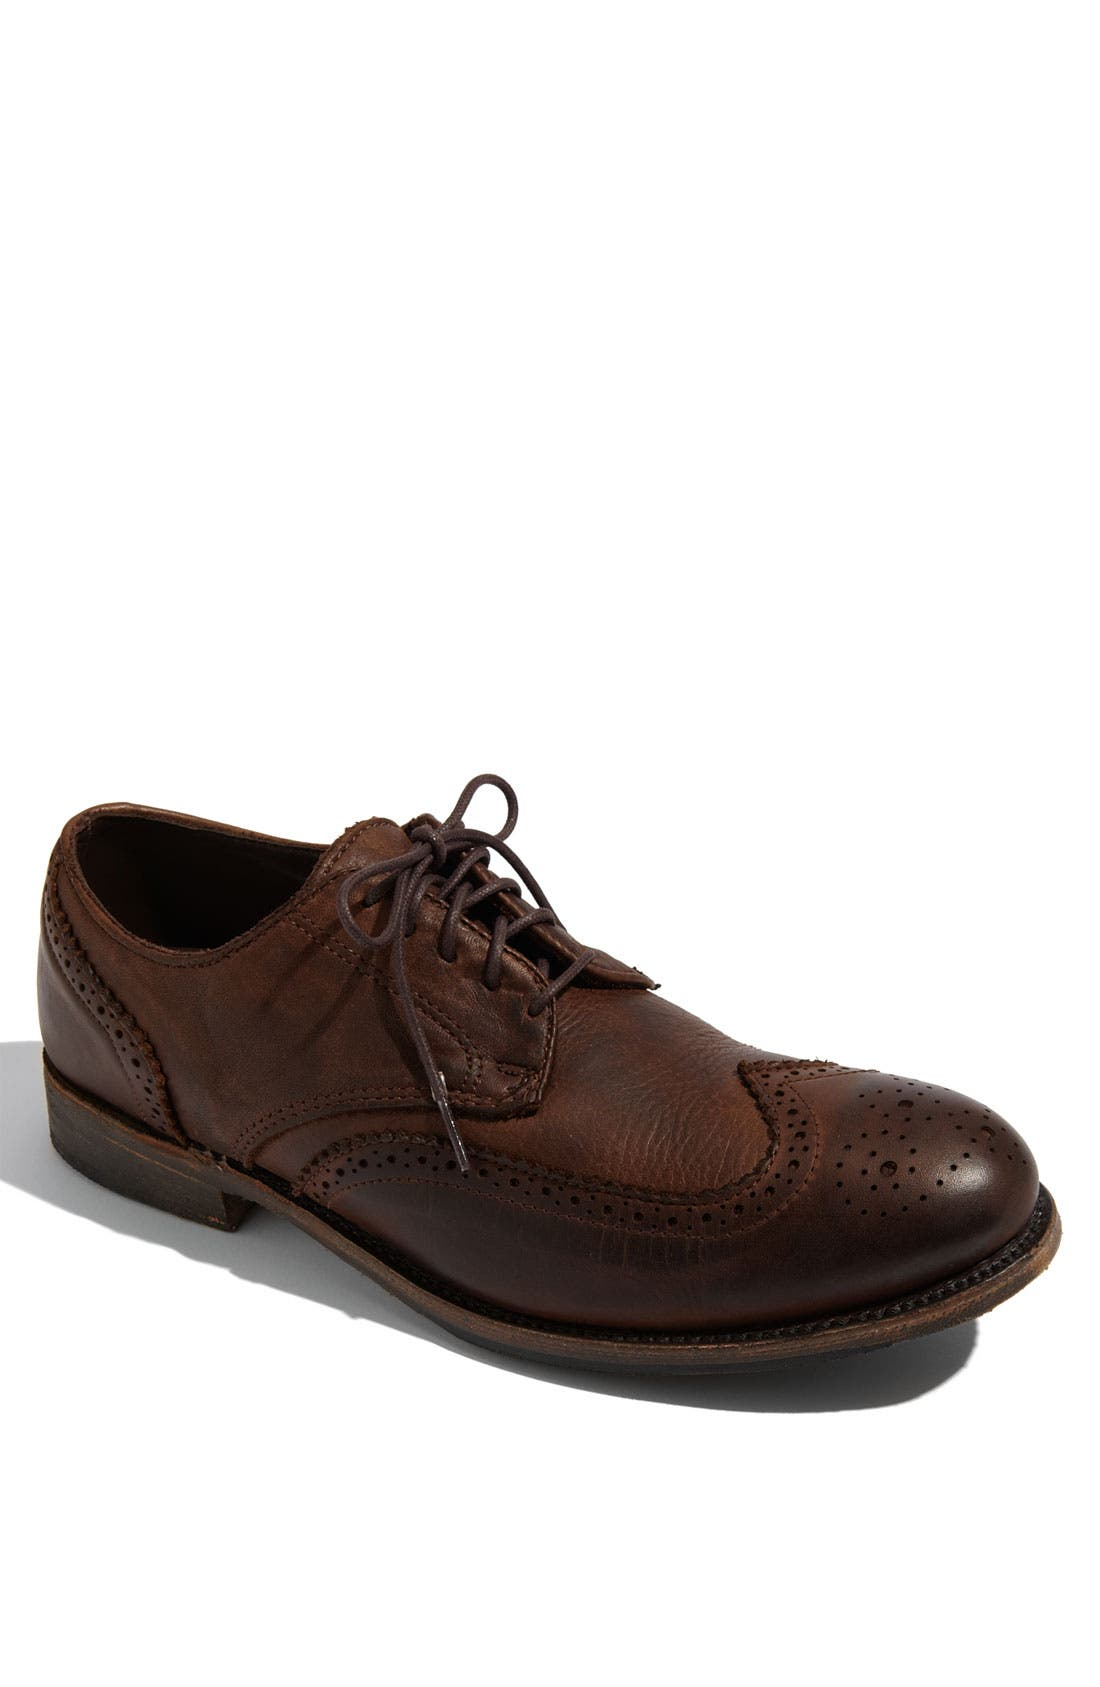 Alternate Image 1 Selected - Vintage Shoe Company 'Langdon' Wingtip Oxford